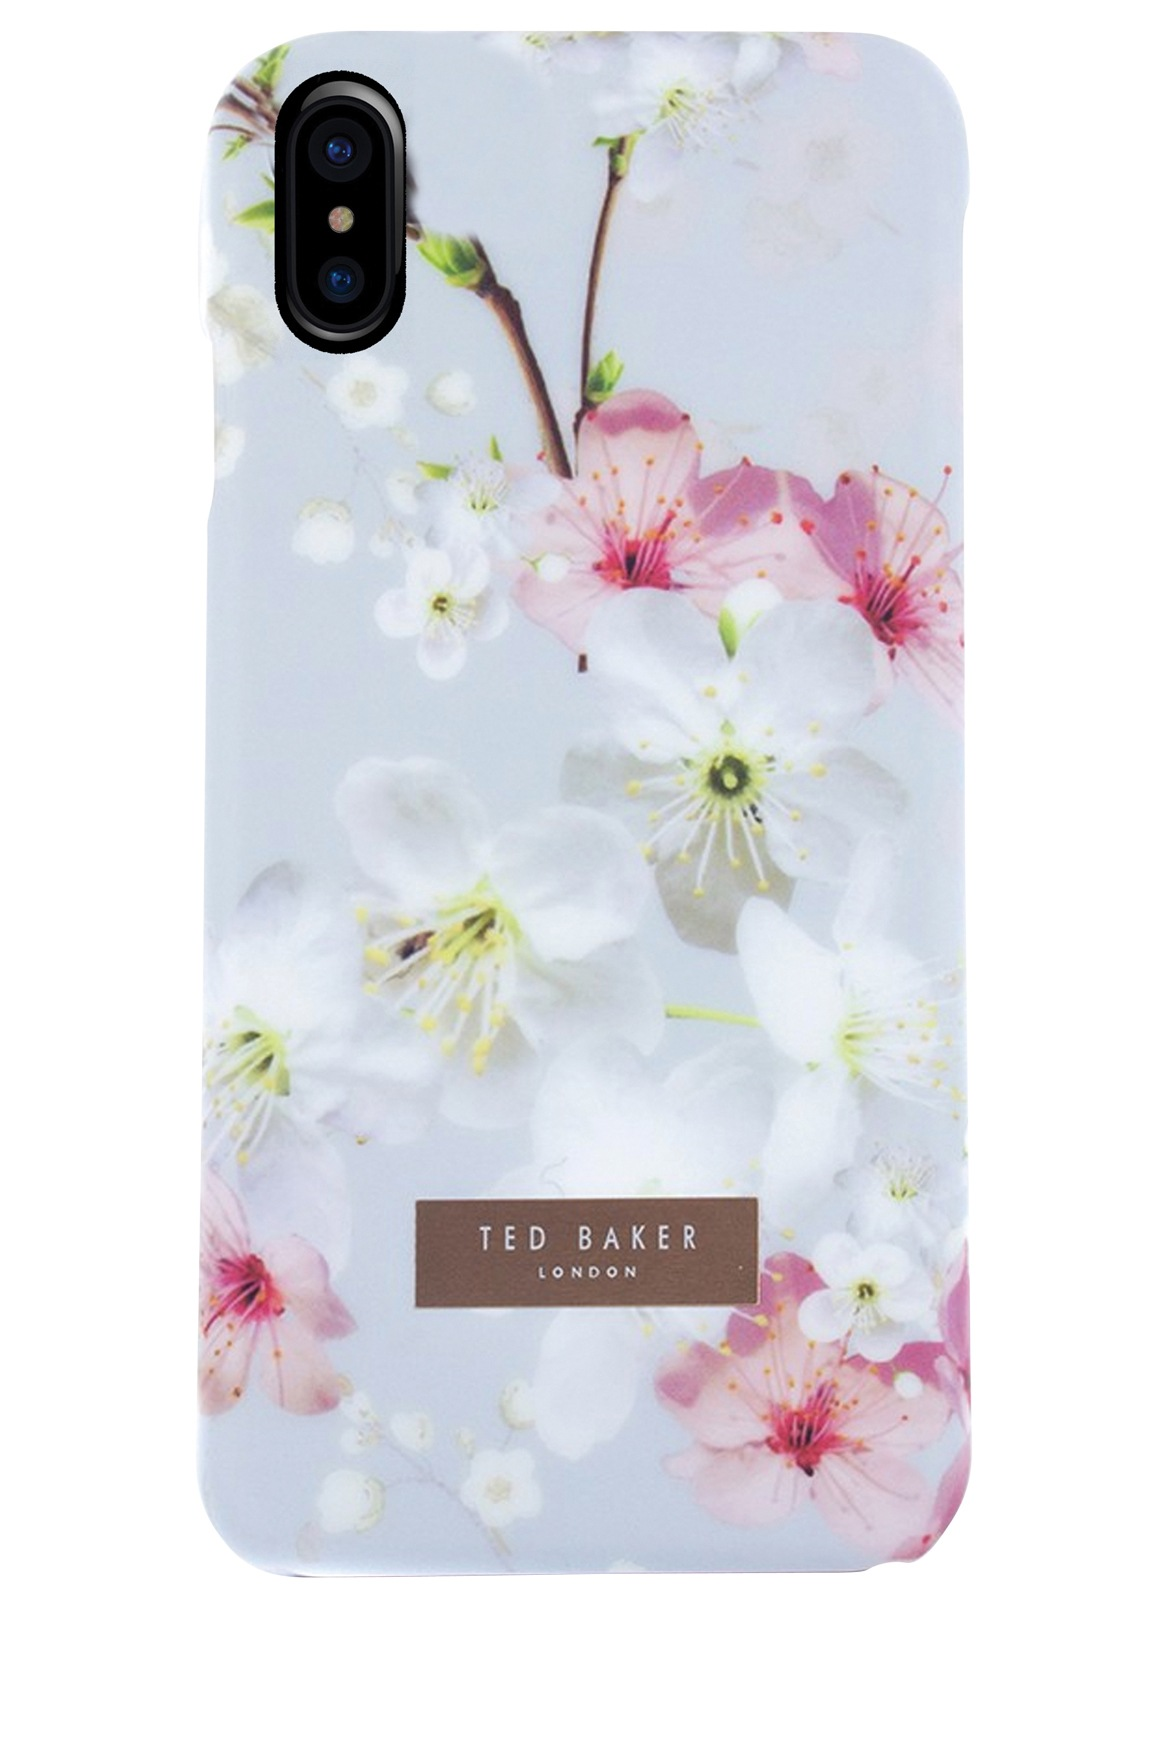 ted baker phone case iphone x